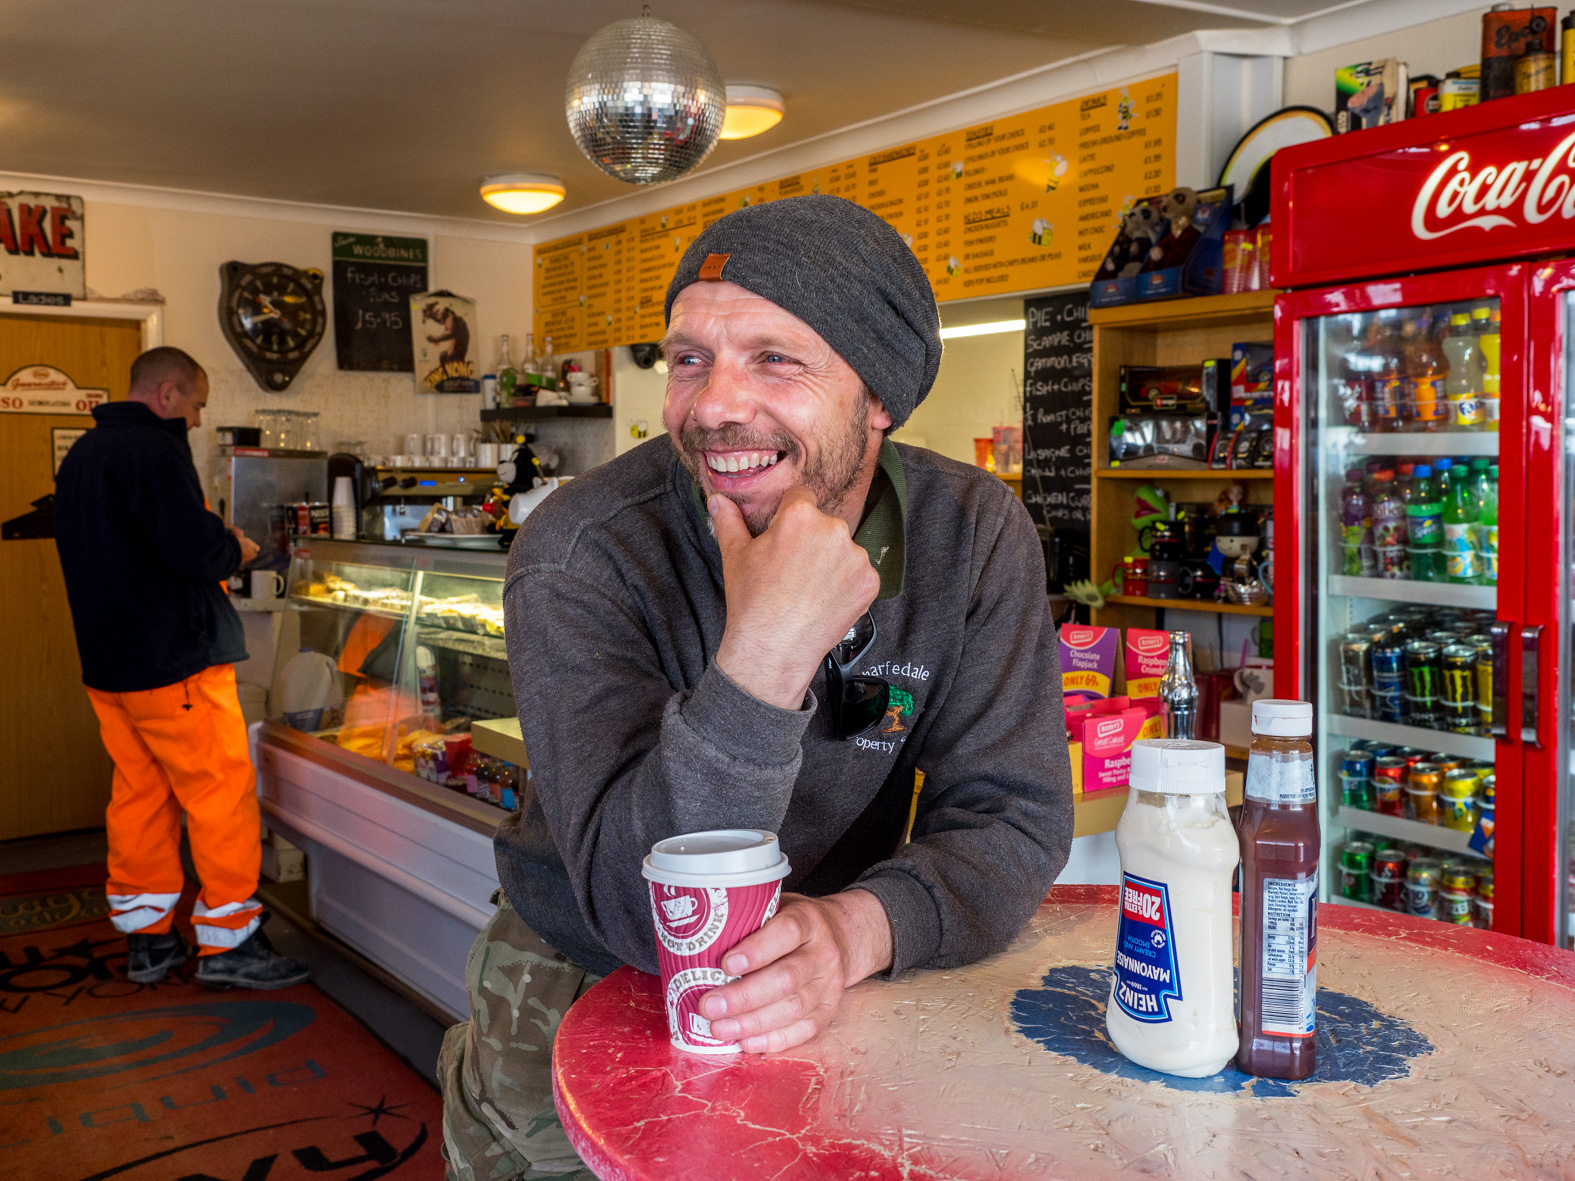 Paul in the Busy Bees Diner. He previoulsy worked in the army and as a policeman before leaving to set up a gardening and property business which is in high demand. Darrington, West Yorkshire.